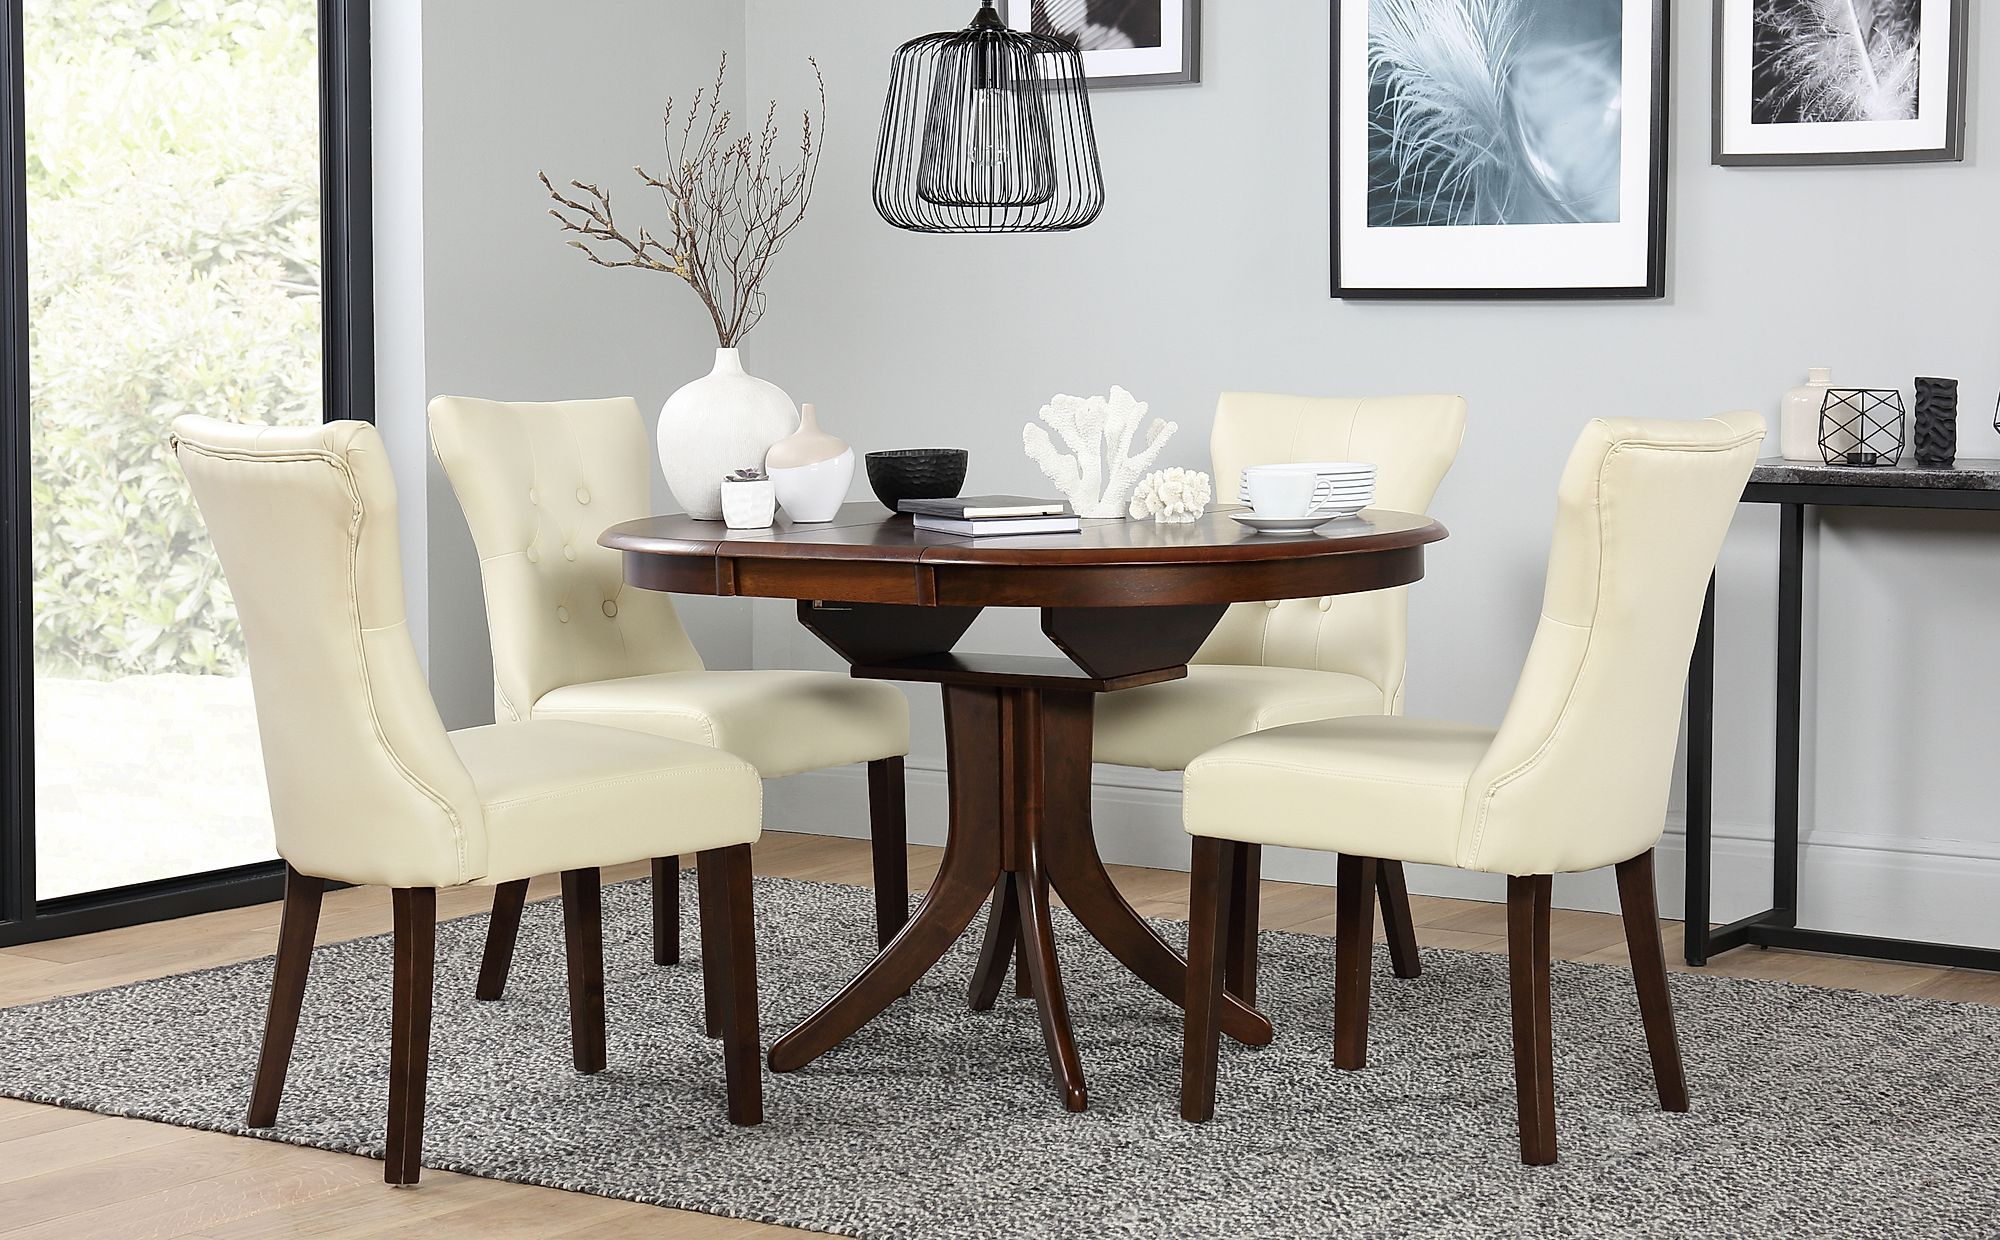 Outstanding Hudson Round Dark Wood Extending Dining Table With 6 Bewley Ivory Chairs Onthecornerstone Fun Painted Chair Ideas Images Onthecornerstoneorg